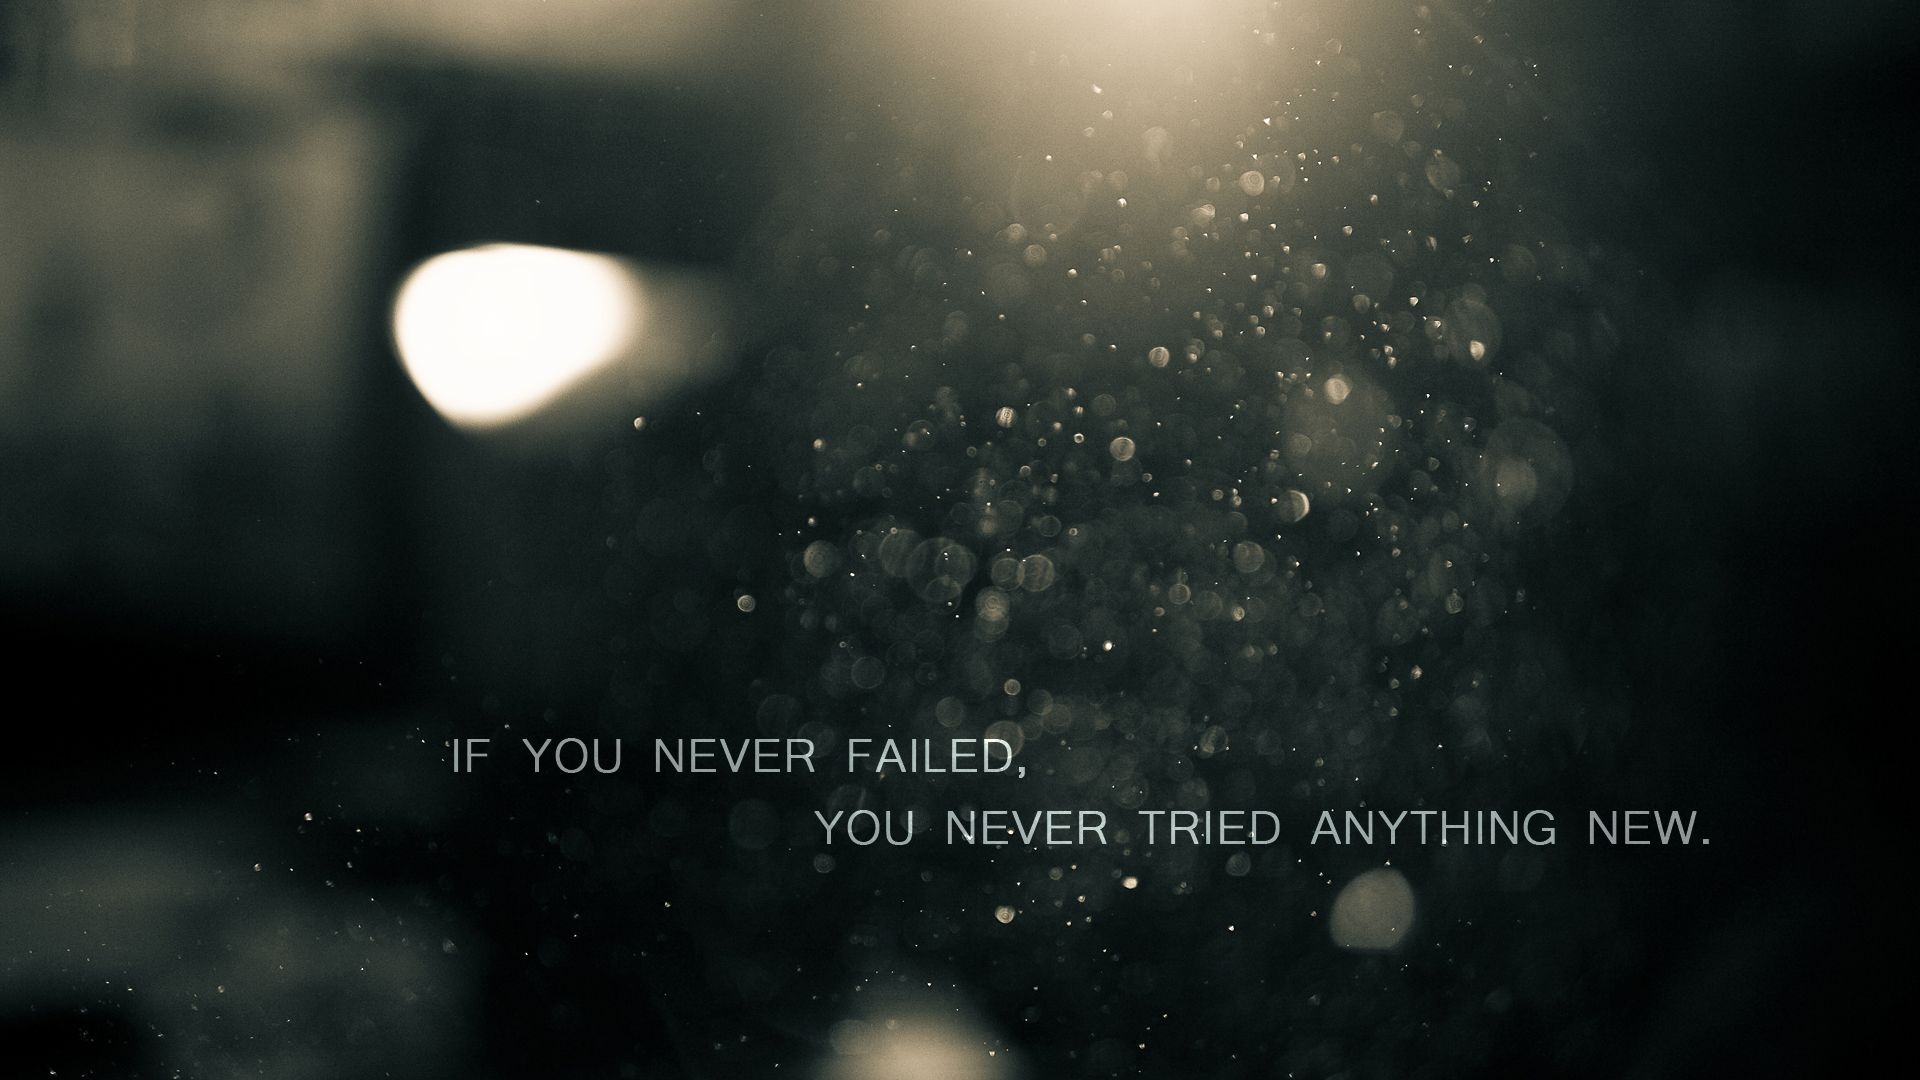 motivational-fail-message-42_www.FullHDWpp.com_